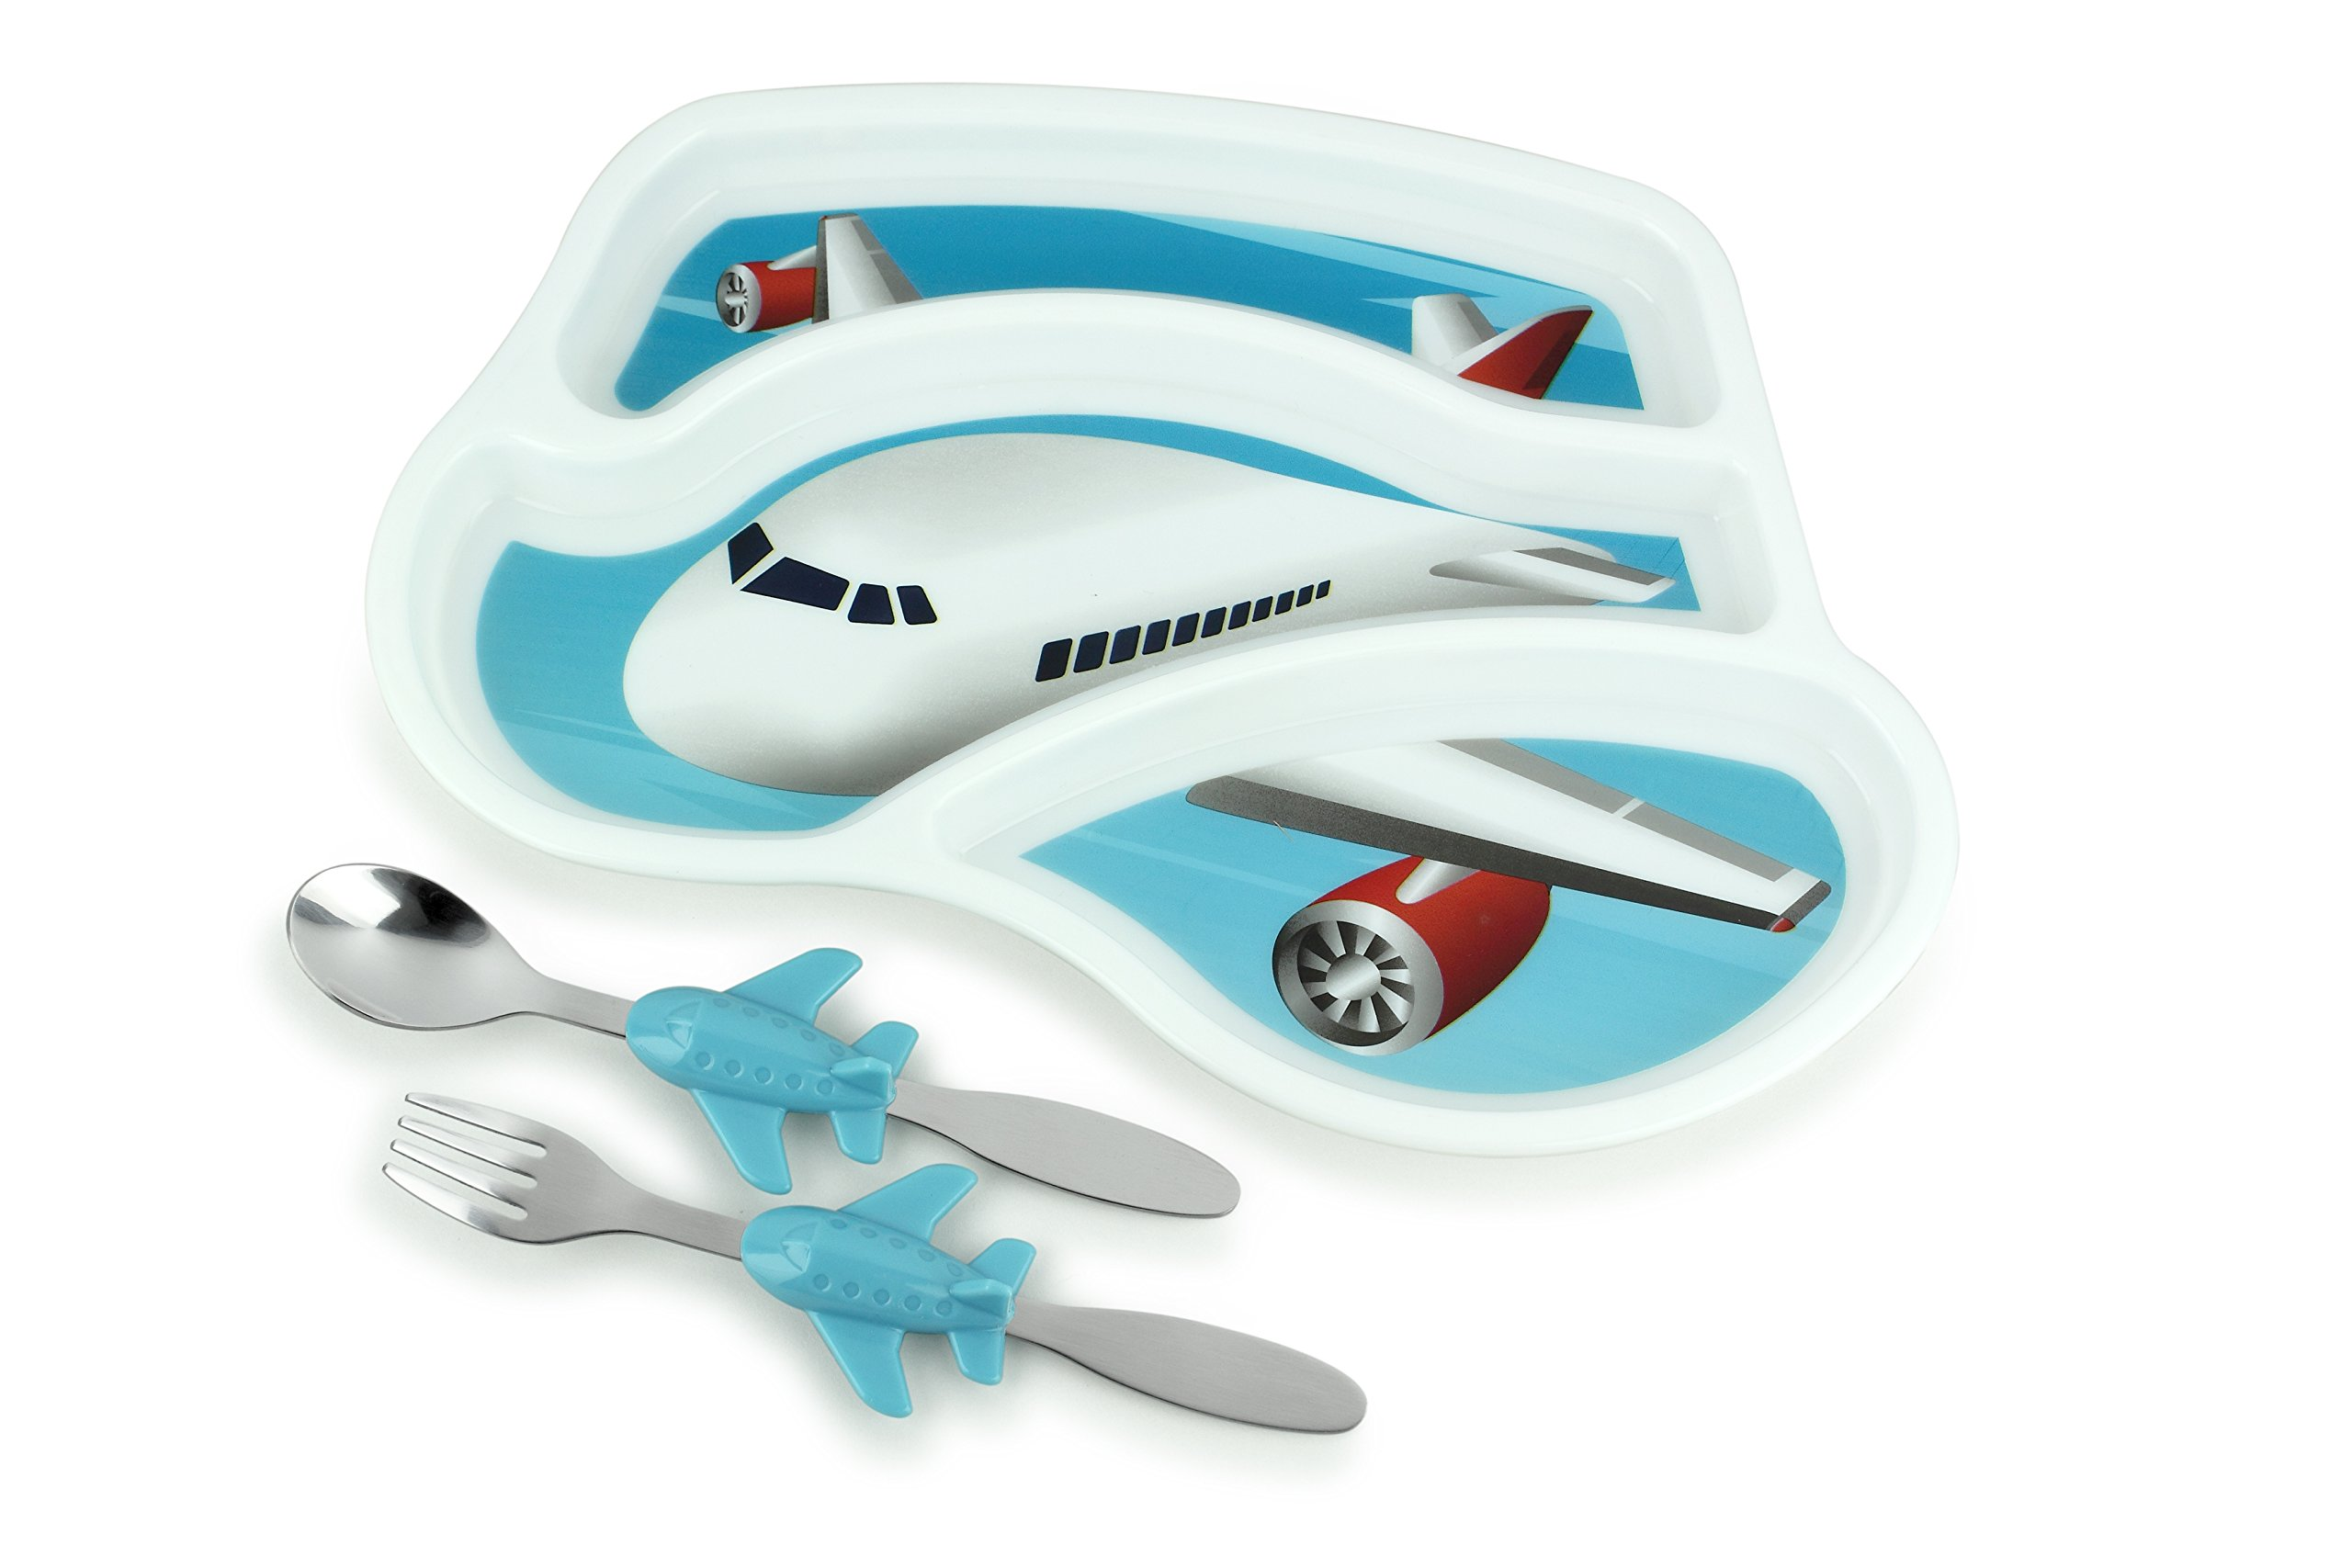 KidsFunwares Me Time Meal Set (Airplane) – 3-Piece Set for Kids and Toddlers – Plate, Fork and Spoon that Children Love - Sparks your Child's Imagination and Teaches Portion Control - Dishwasher Safe